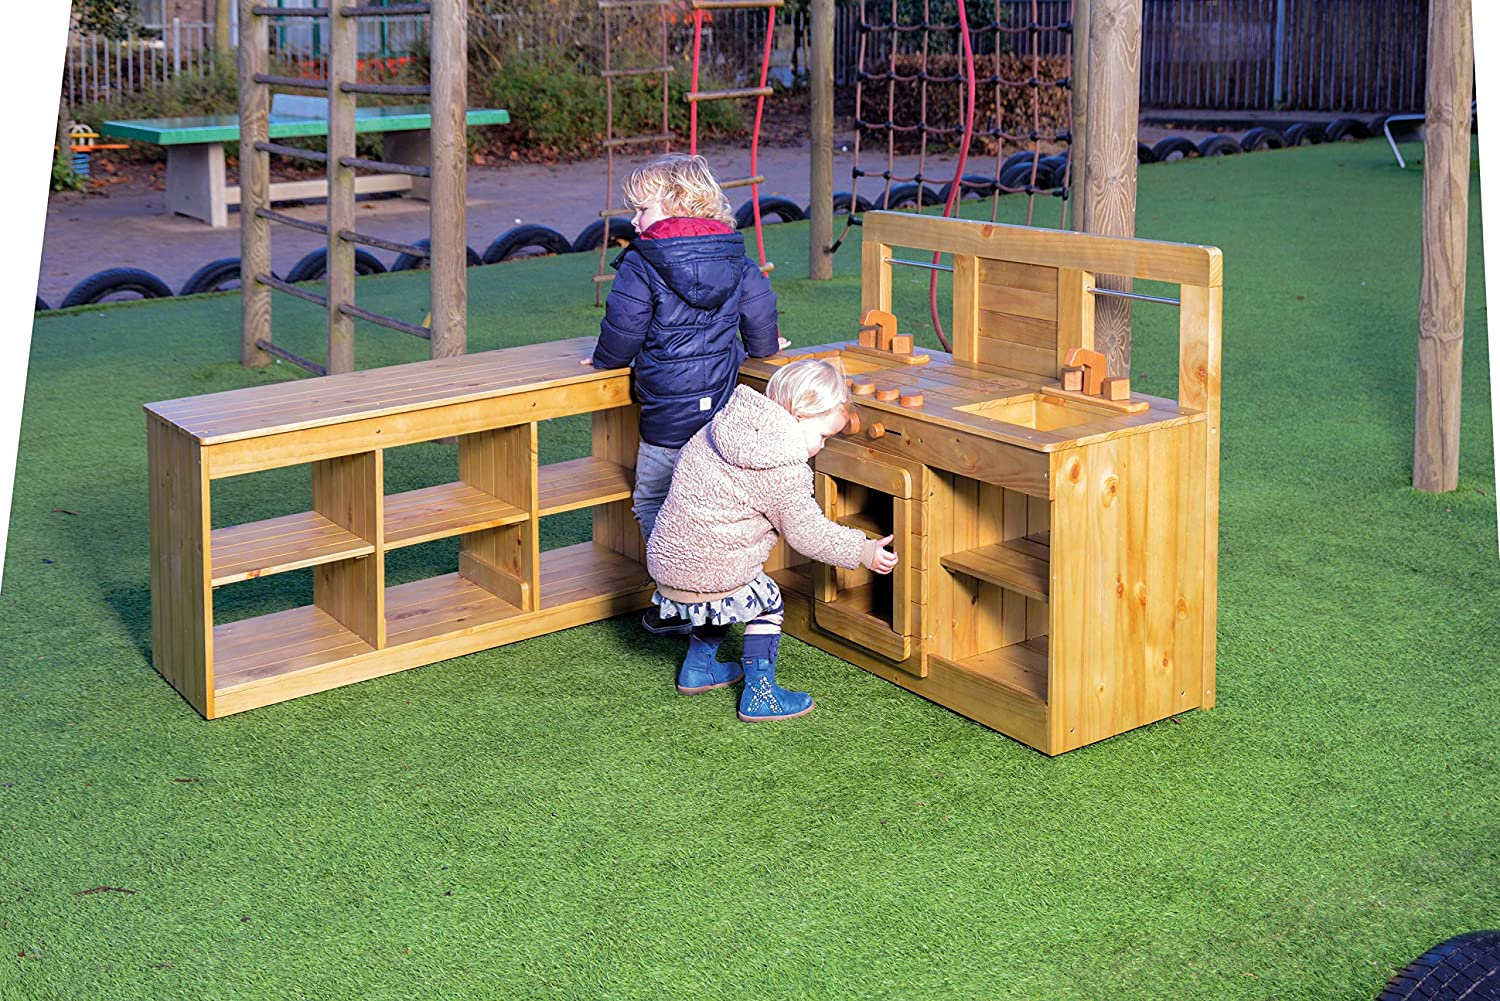 Outdoorküche Kinder Xxl : Eduplay outdoorküche amazon spielzeug